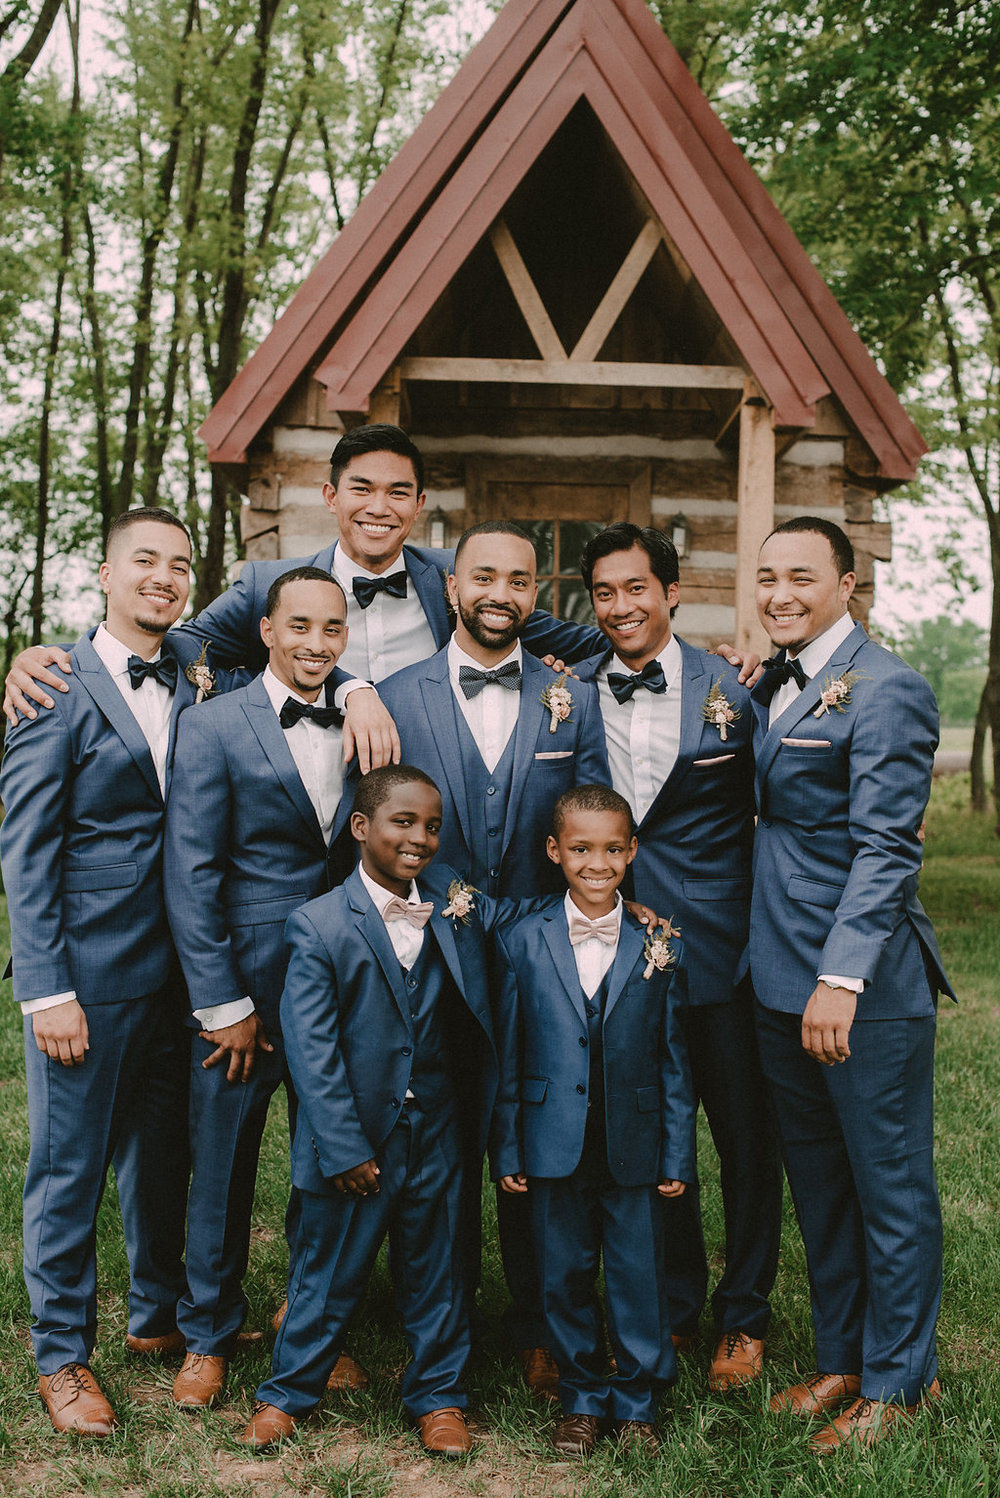 dapper Groom and groomsmen photo